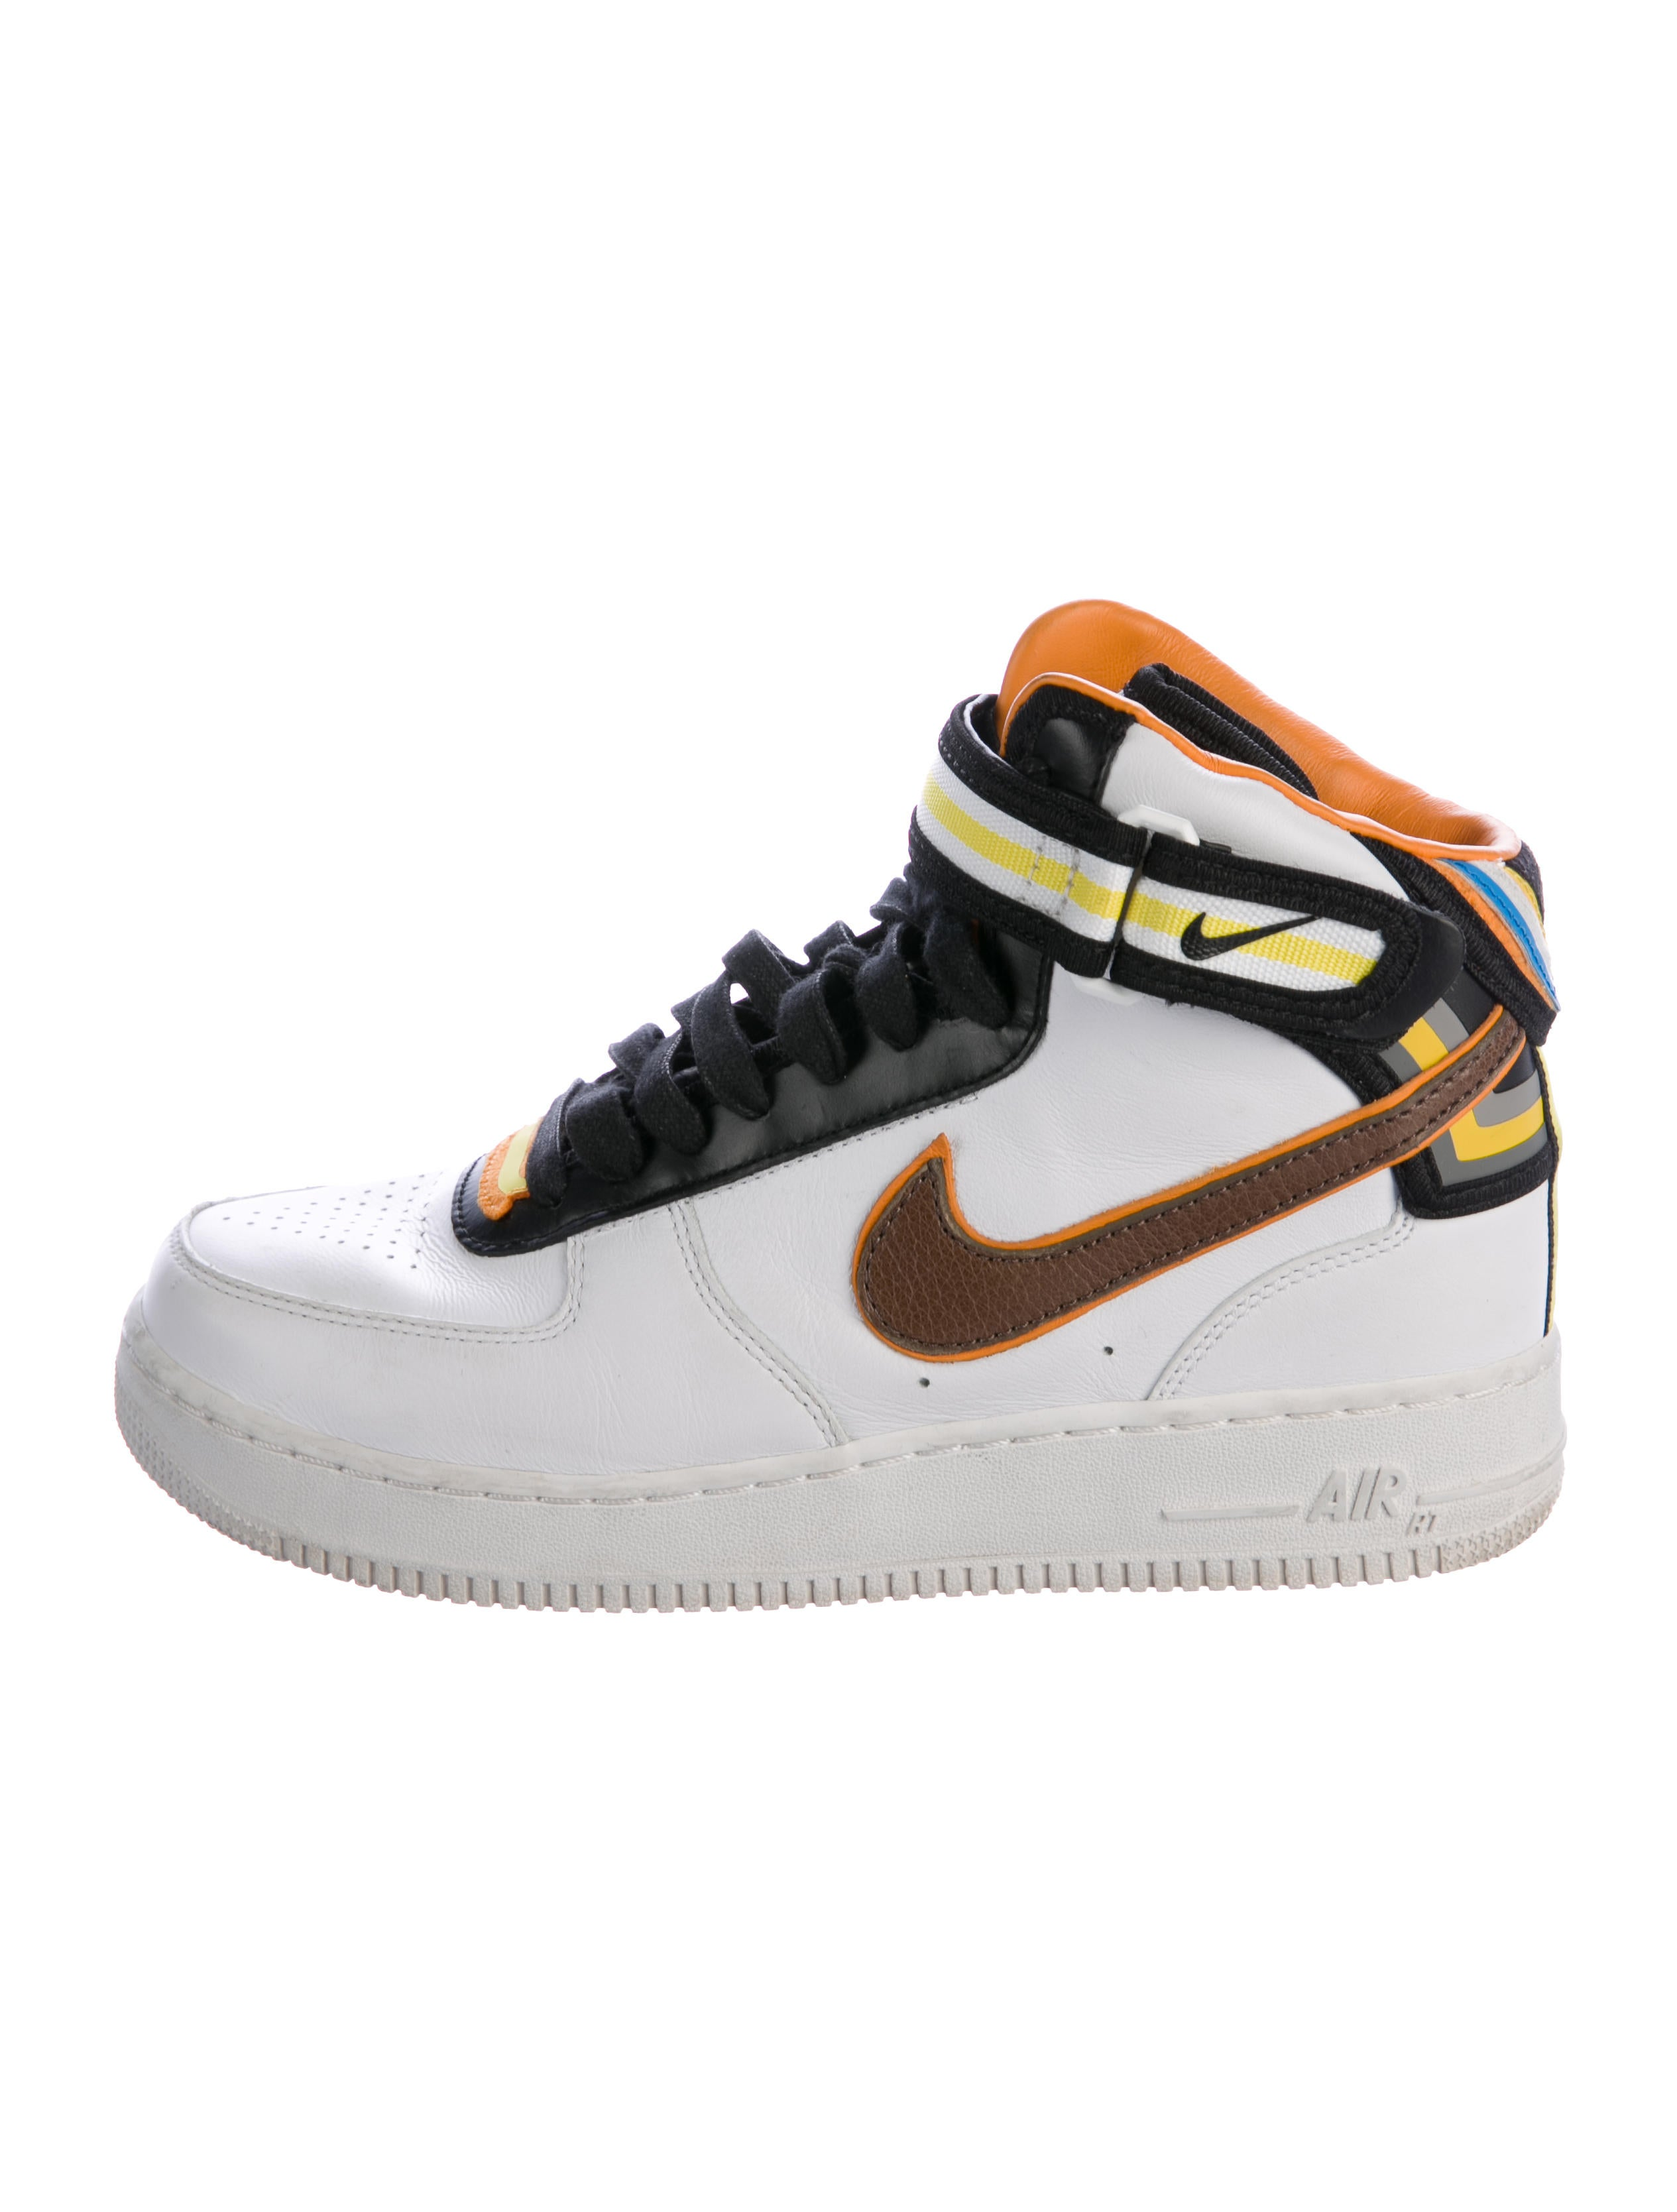 riccardo tisci x nike air force one sneakers shoes. Black Bedroom Furniture Sets. Home Design Ideas